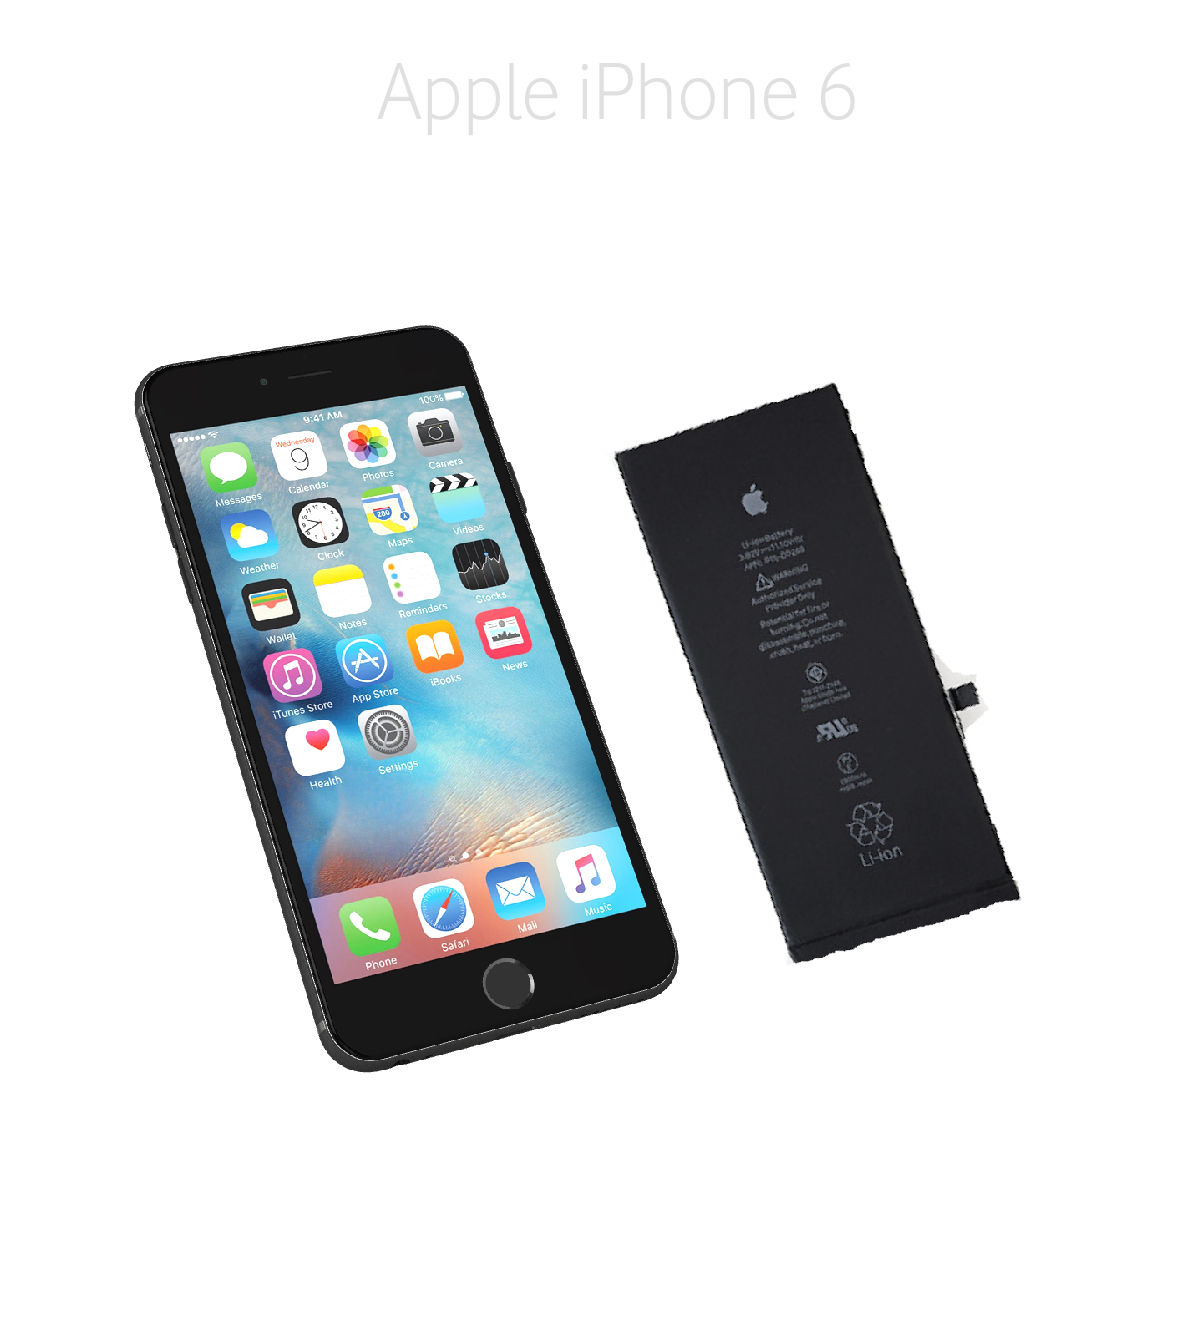 Byta batteri iPhone 6